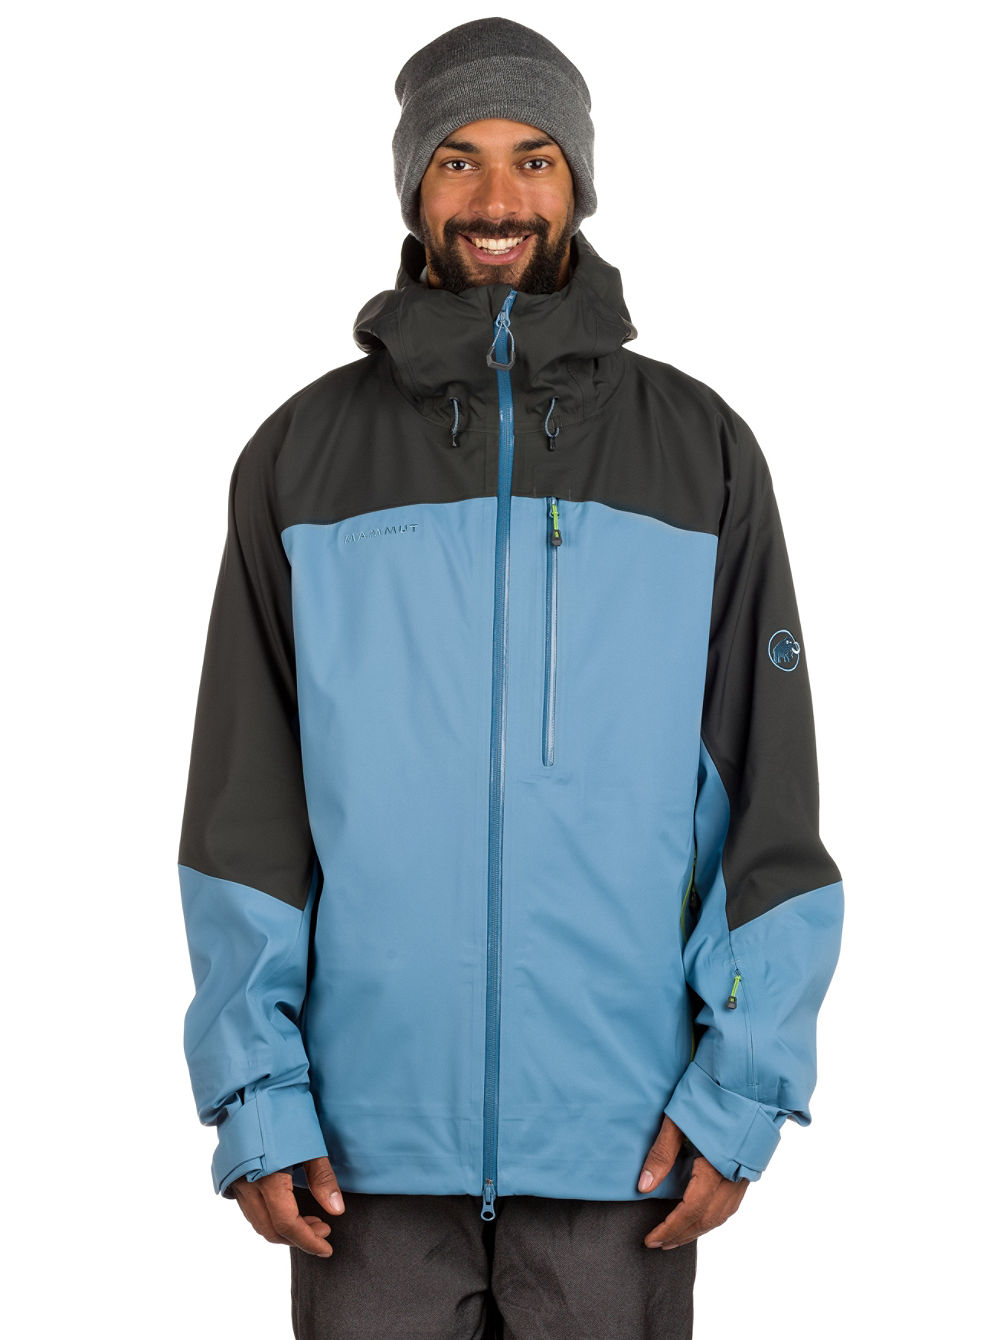 Alvier Tour Hs Hooded Jacke